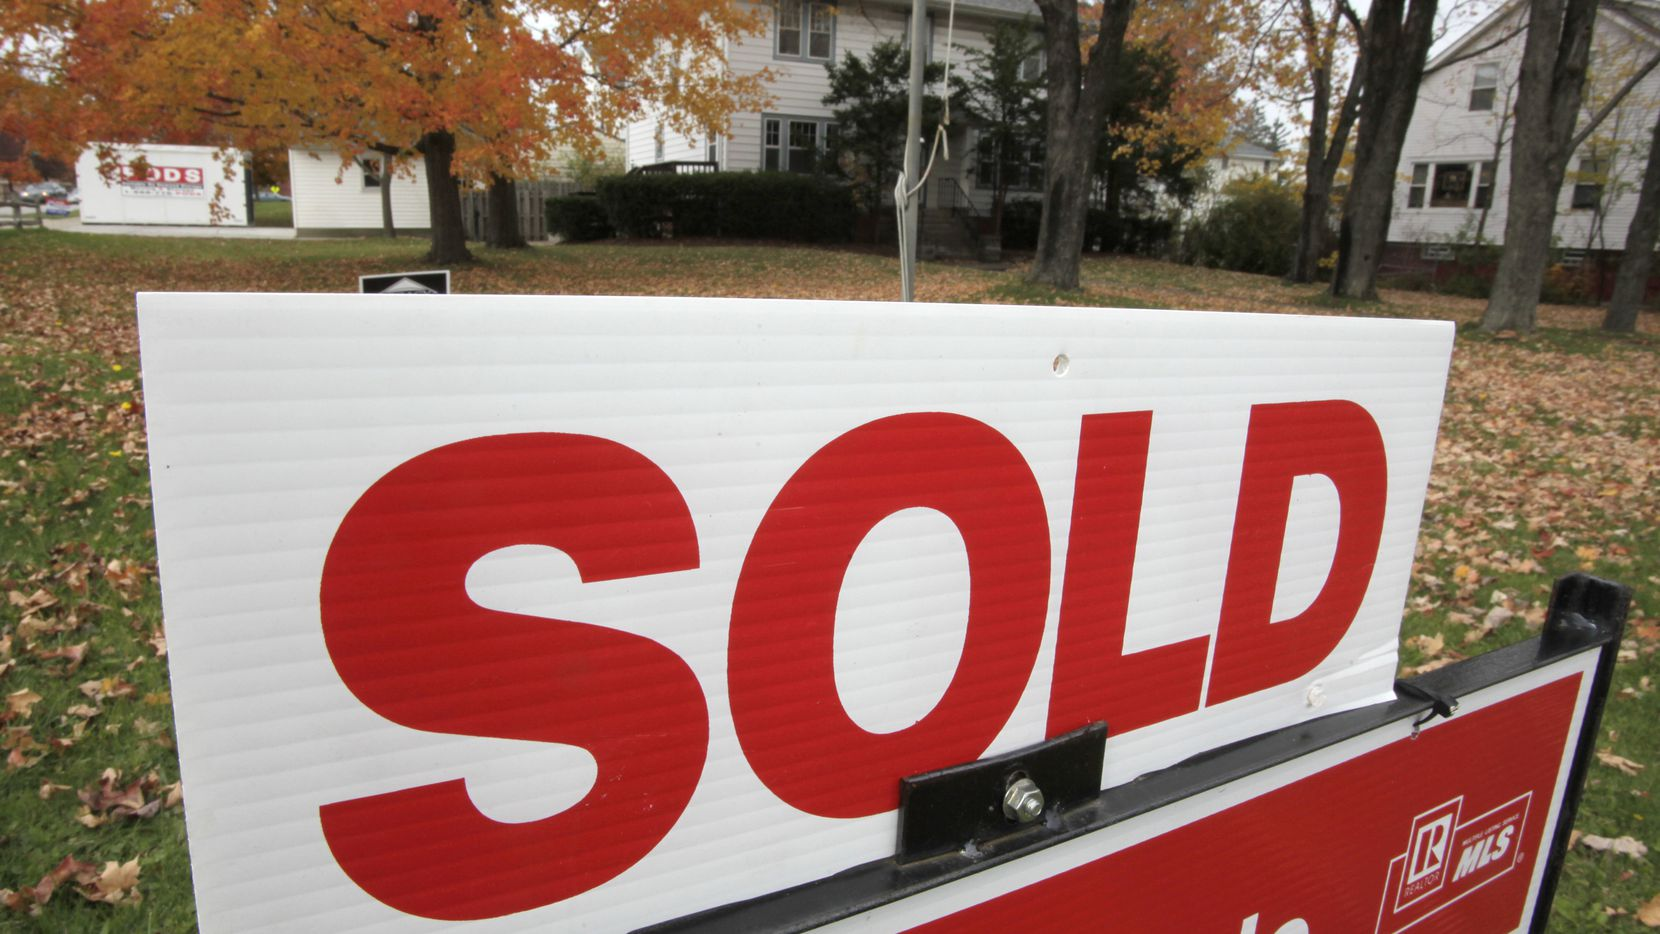 Nationwide home prices are forecast to rise by less than 5 percent in 2019.